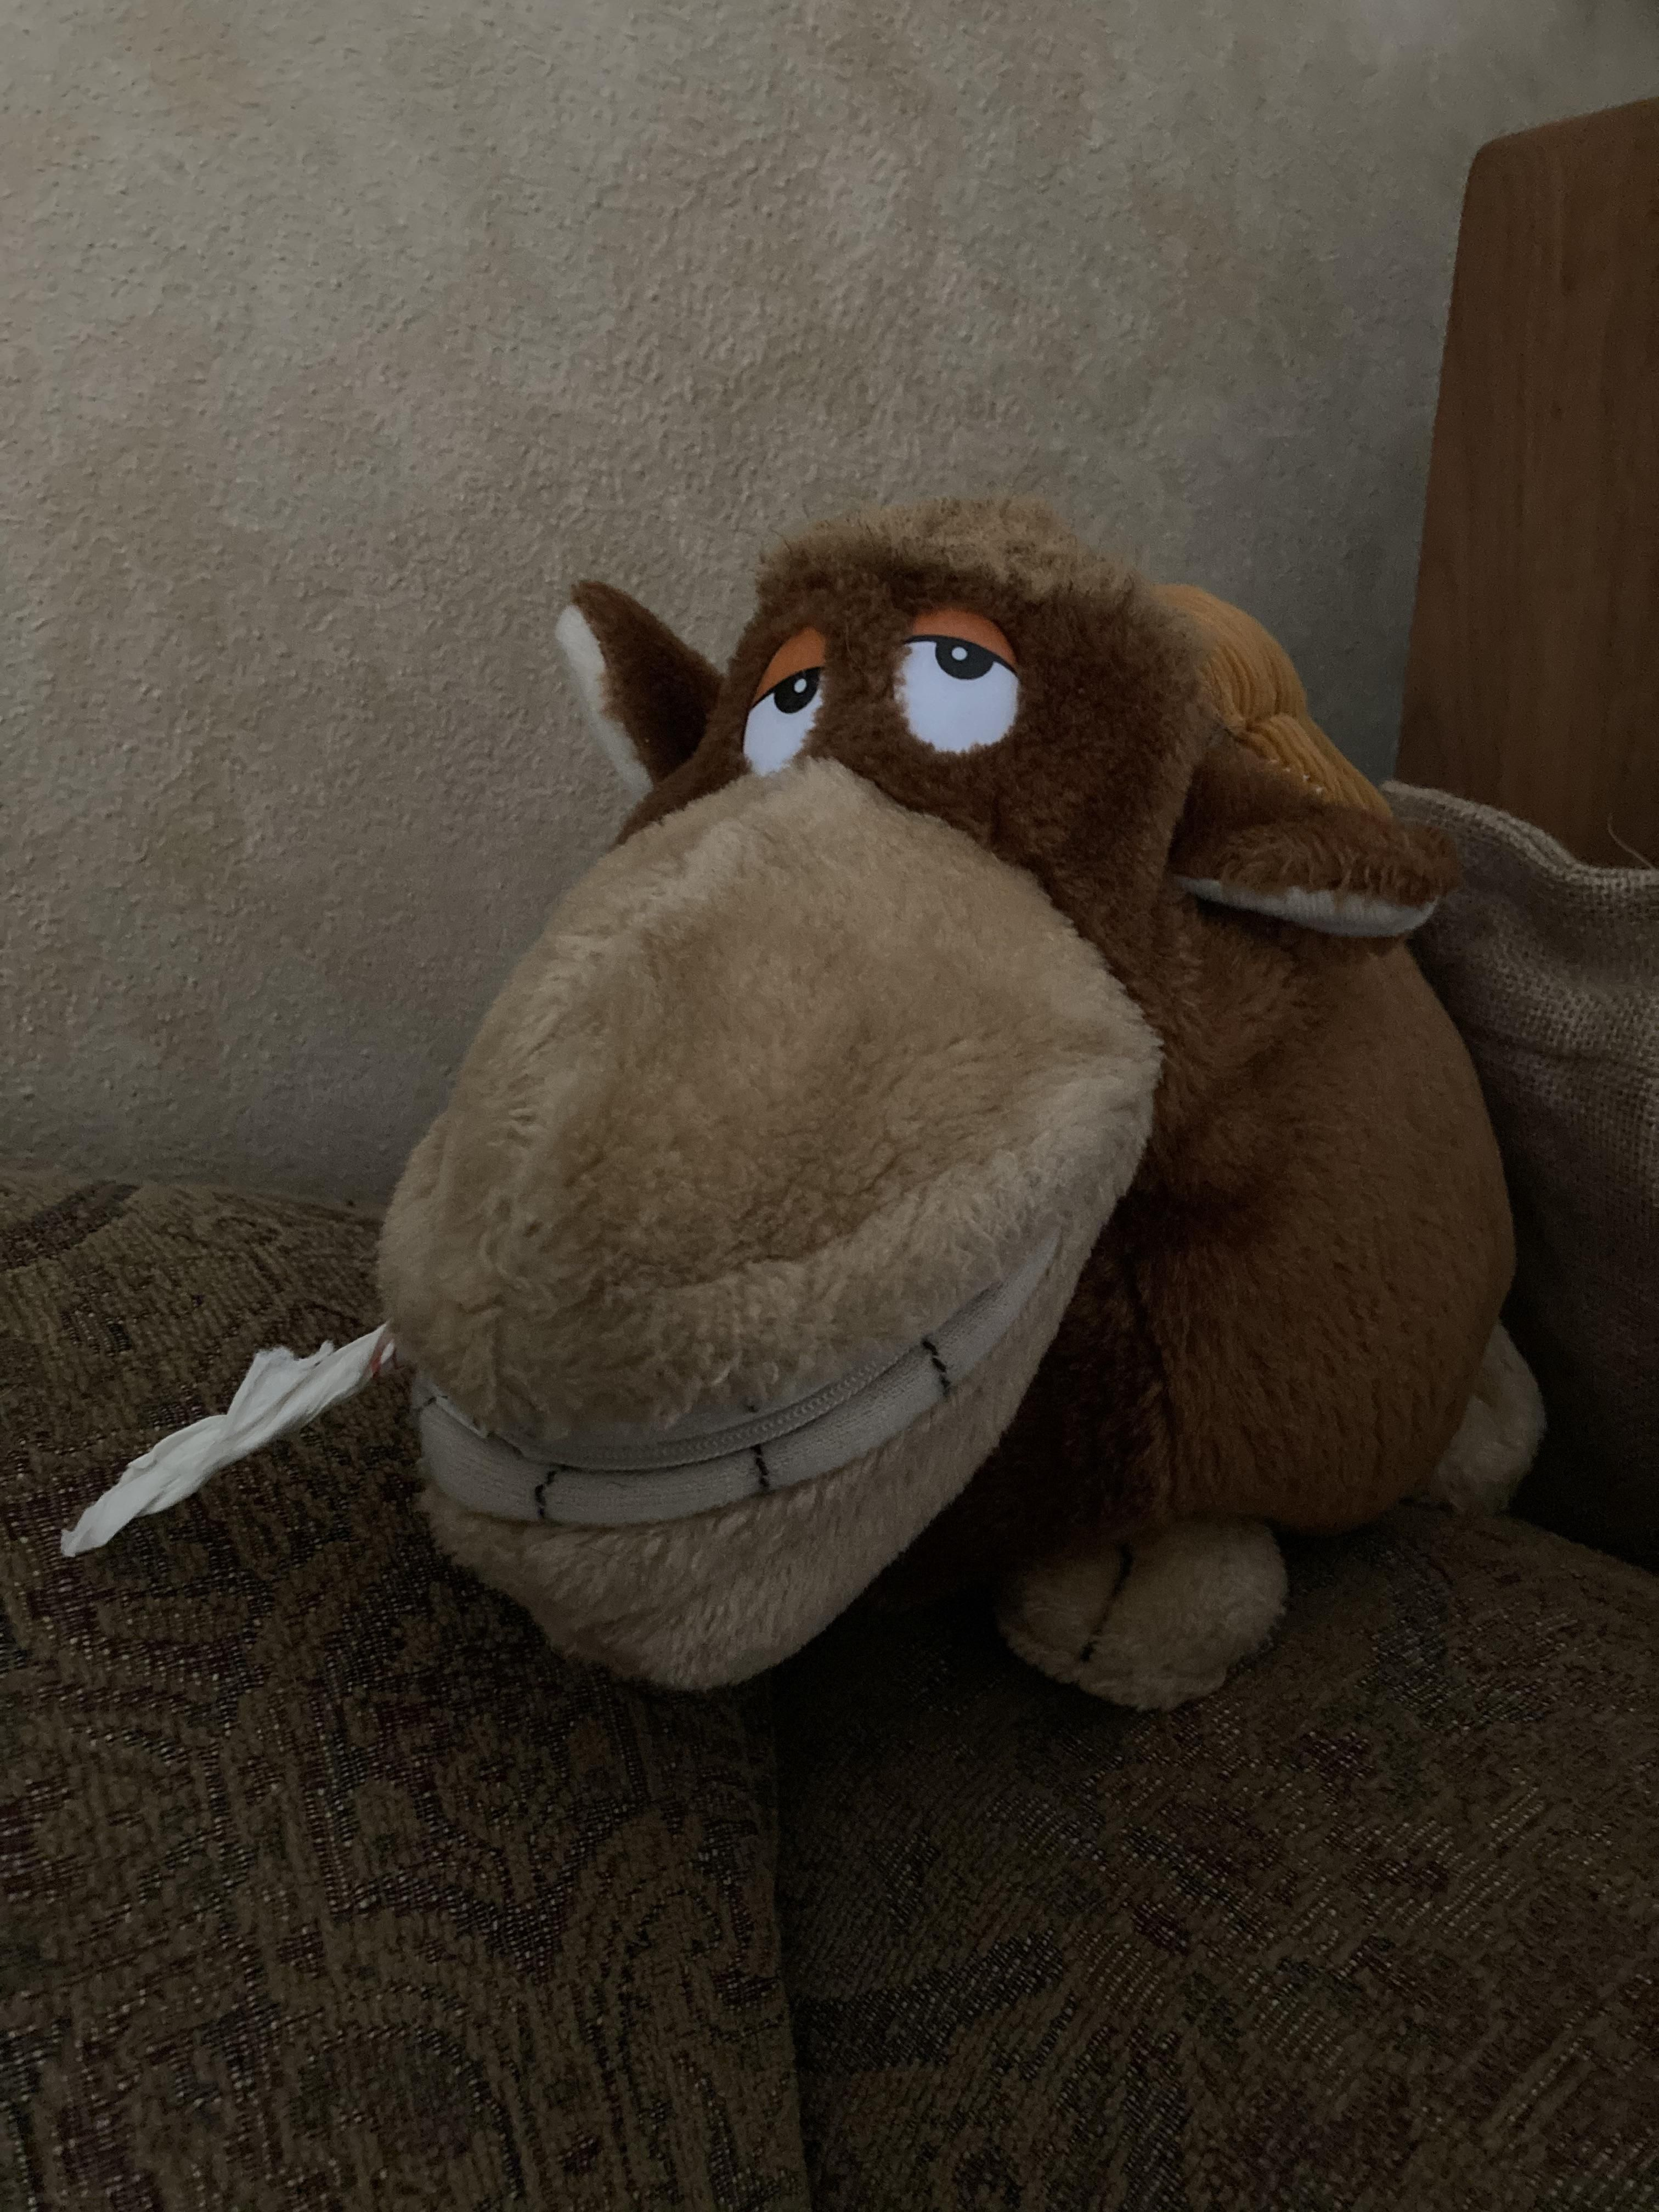 """This stuffed moose in my girlfriend's house. I rolled up a tissue and stuck it in his mouth. He is now """"Stoner Moose."""""""